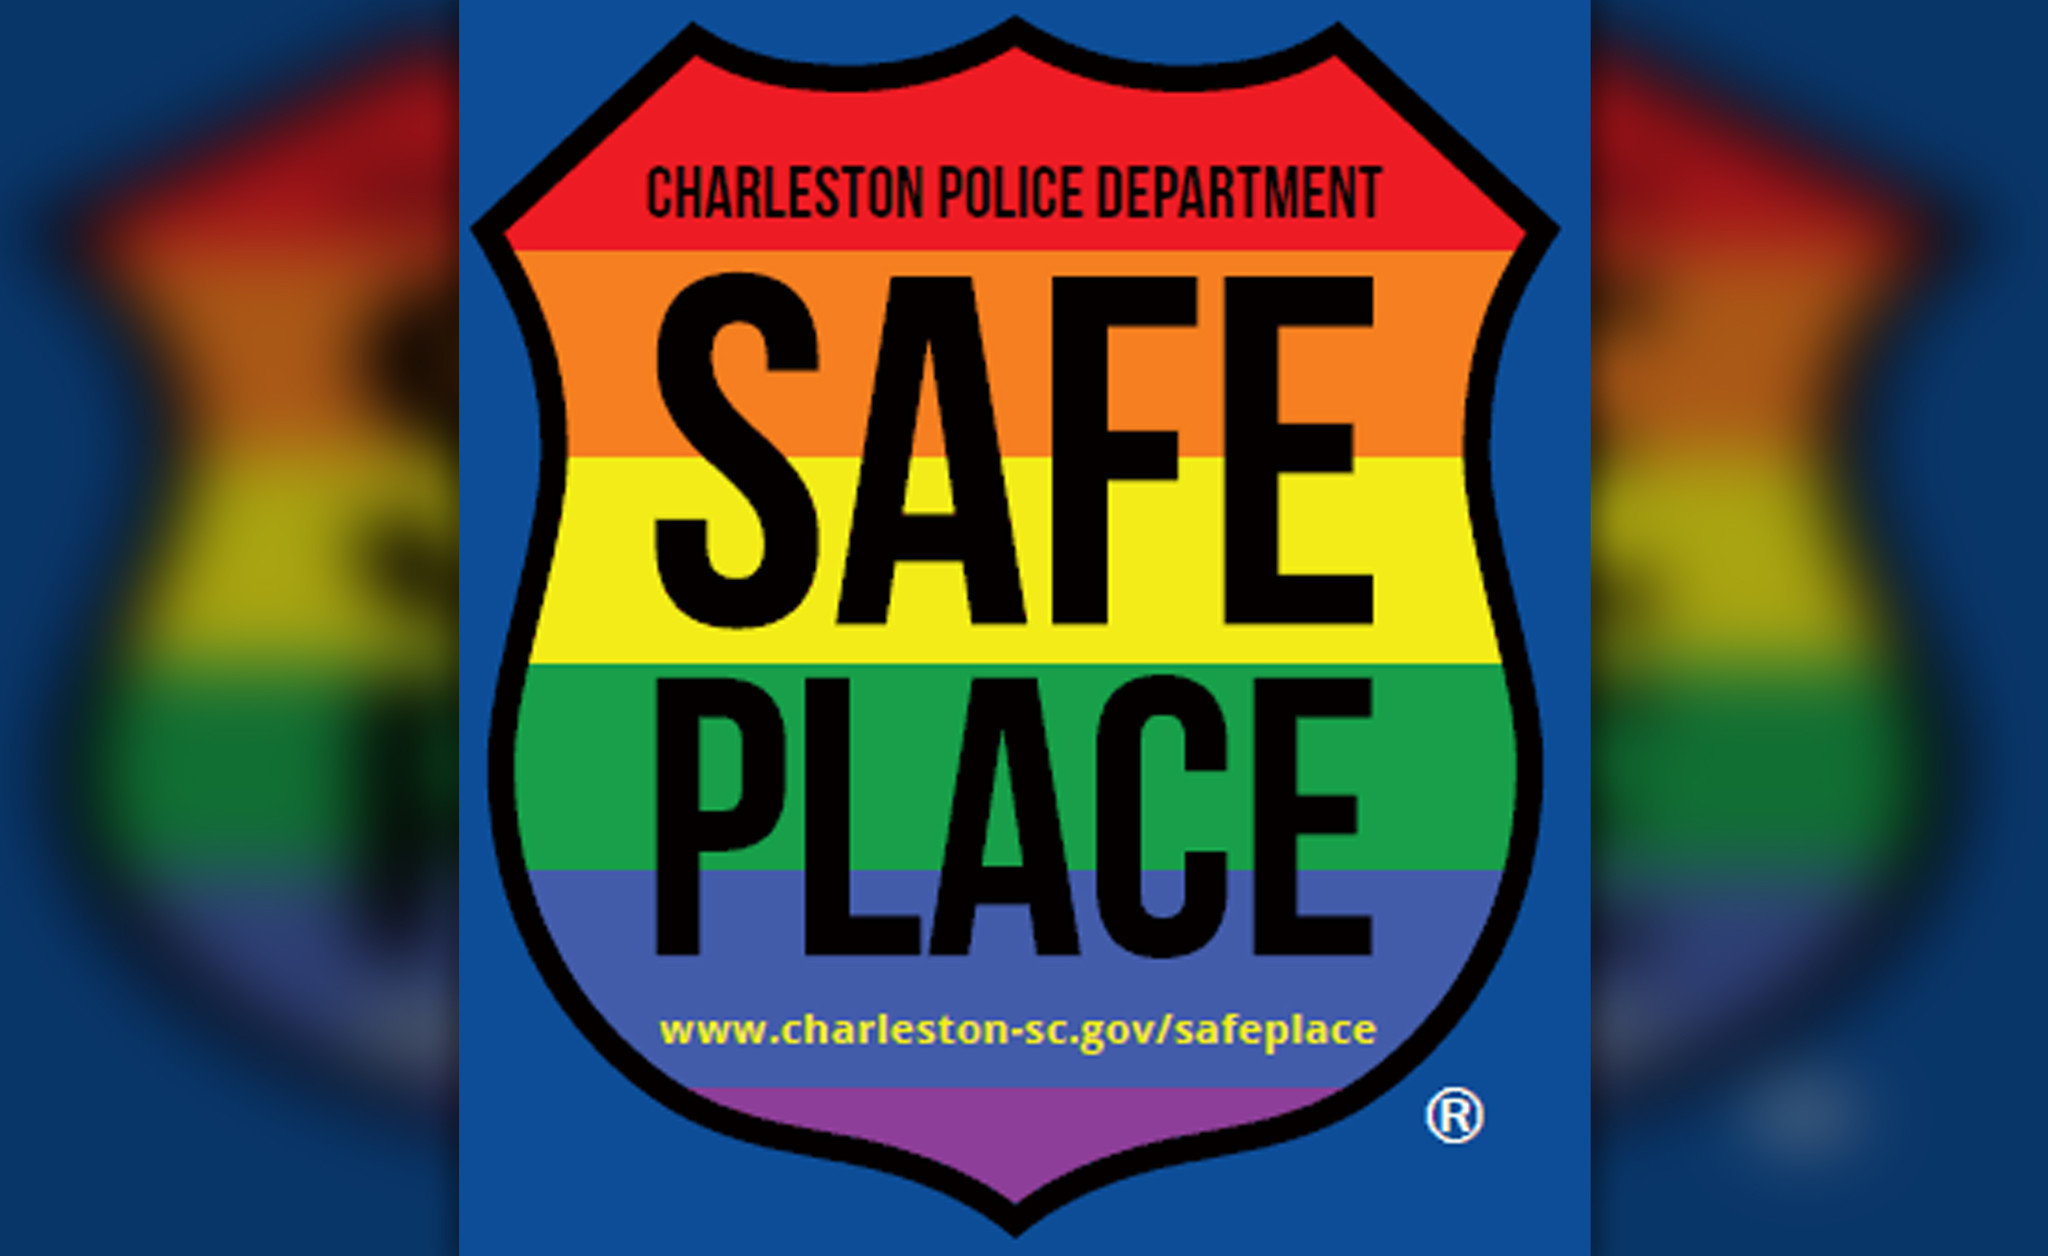 Charleston, S.C., to implement 'Safe Place' program to reduce anti-LGBTQ crimes